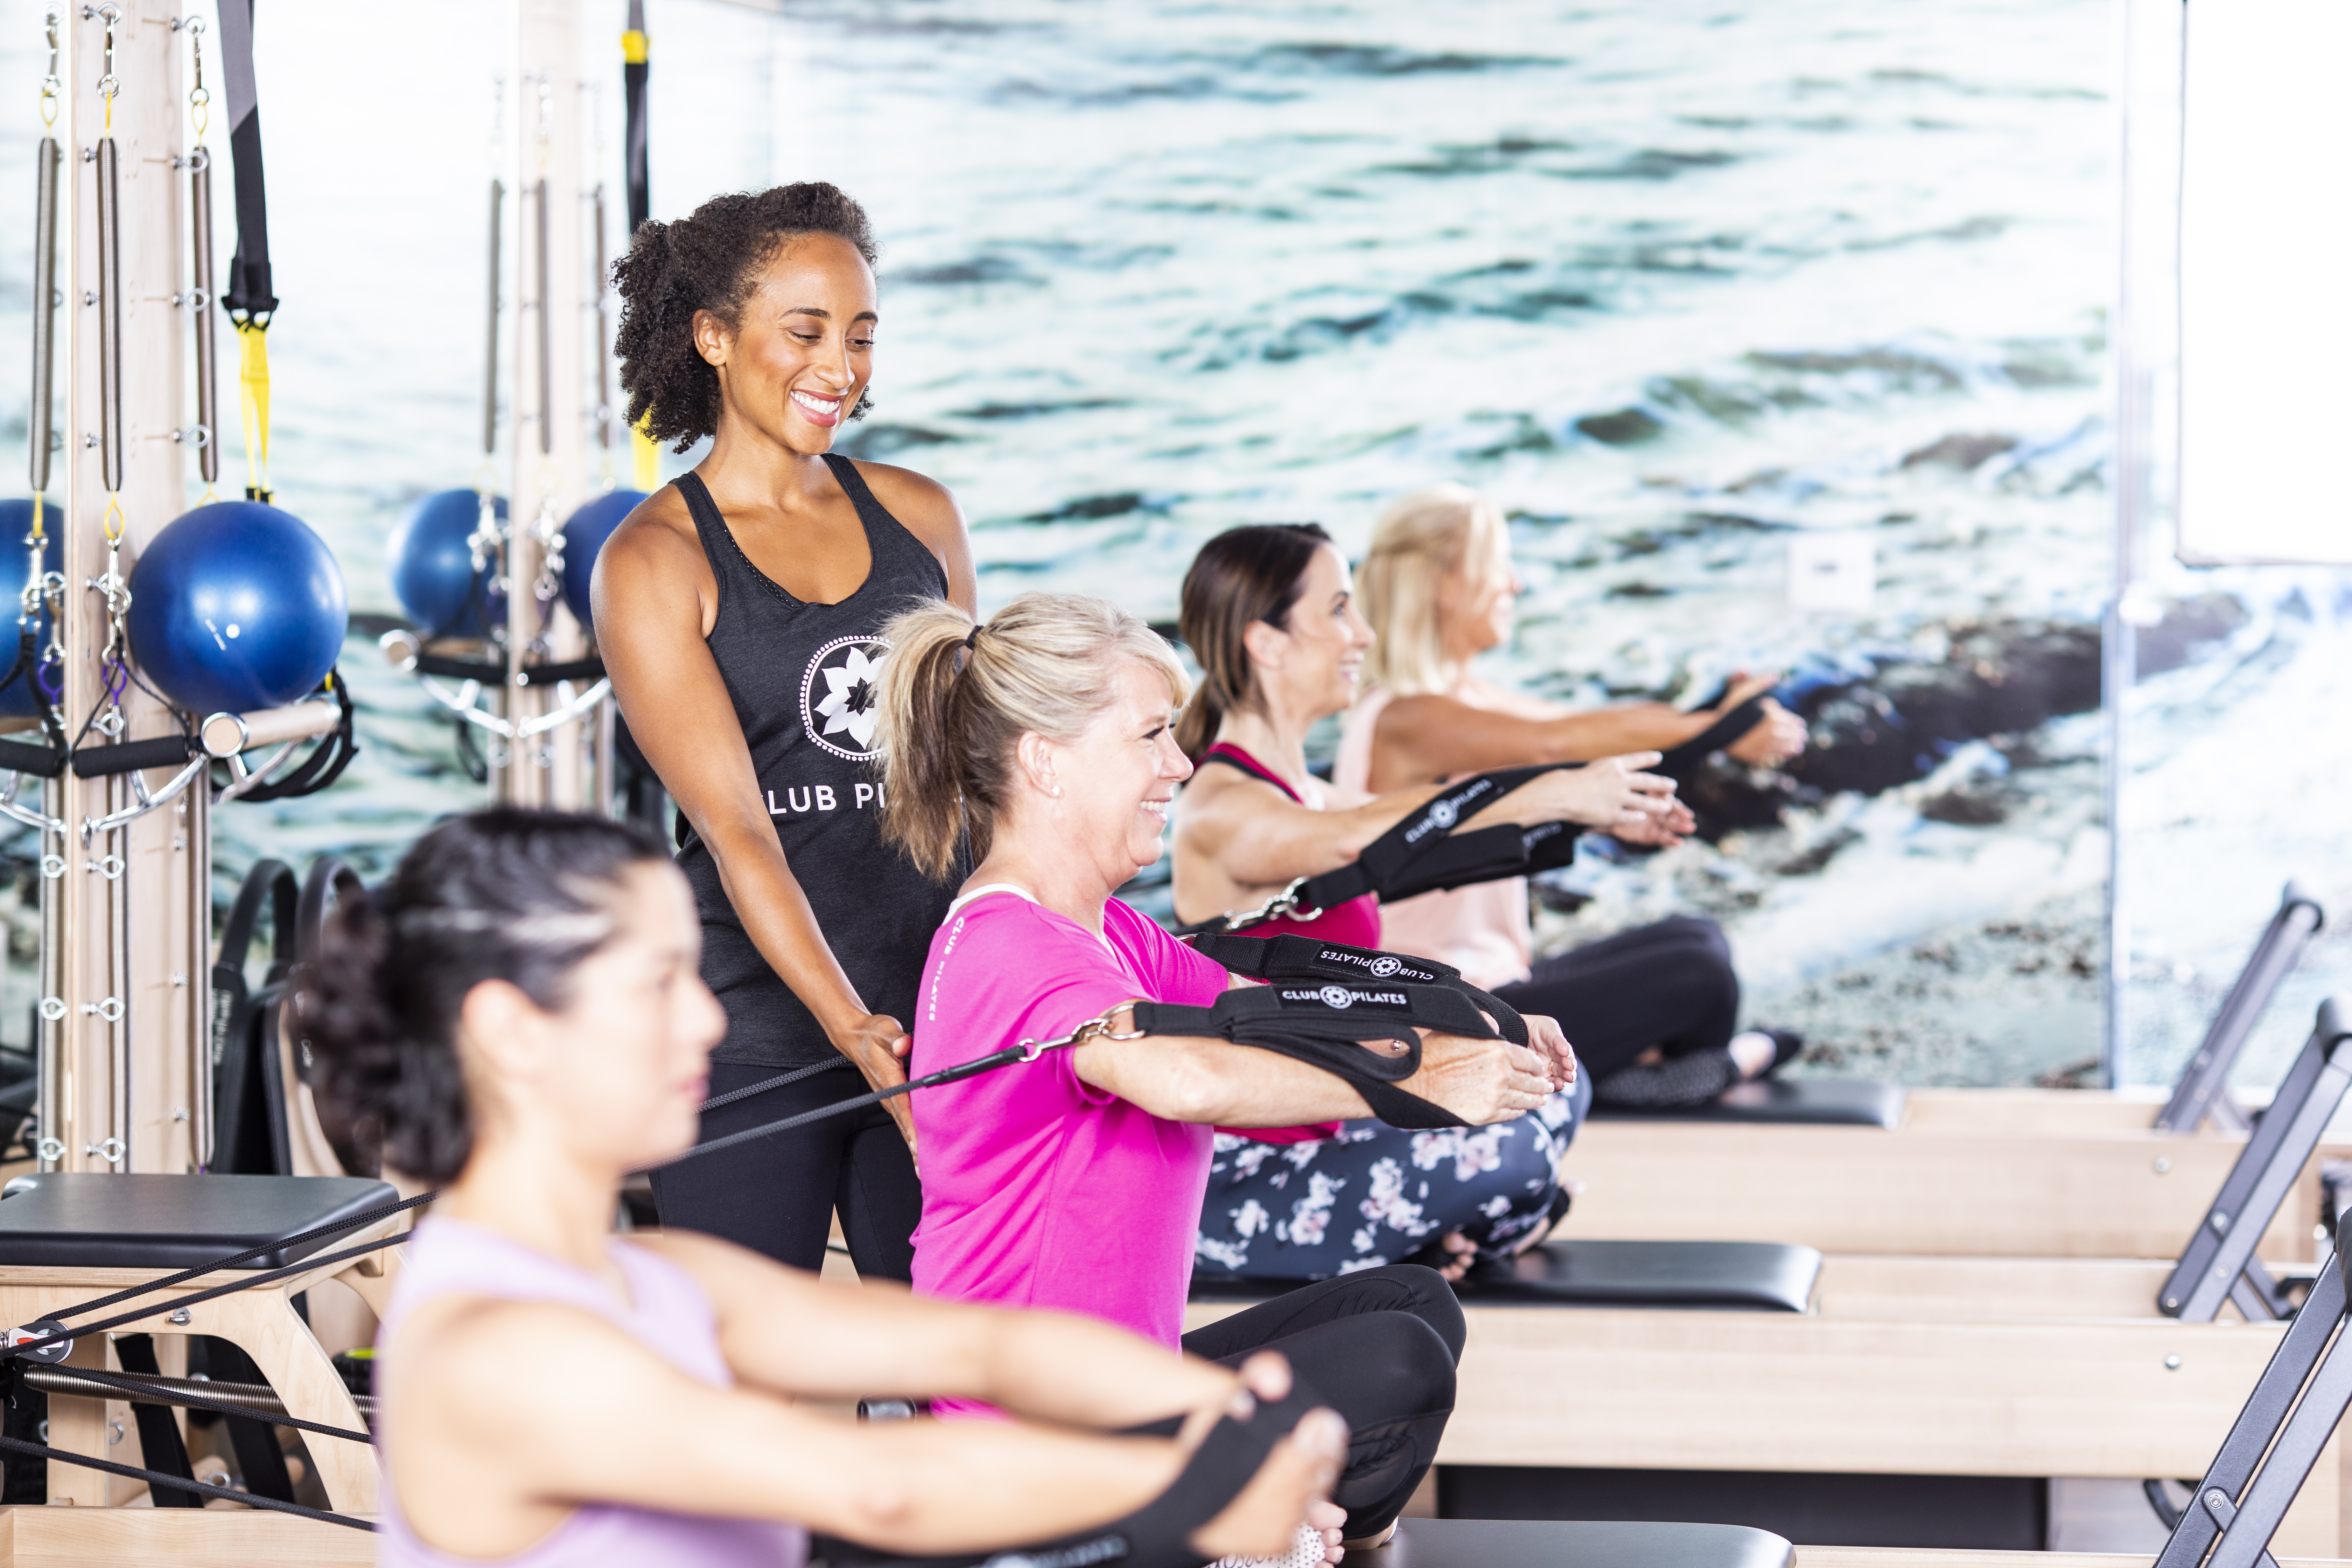 Club Pilates Inks Major Deal in South Korea